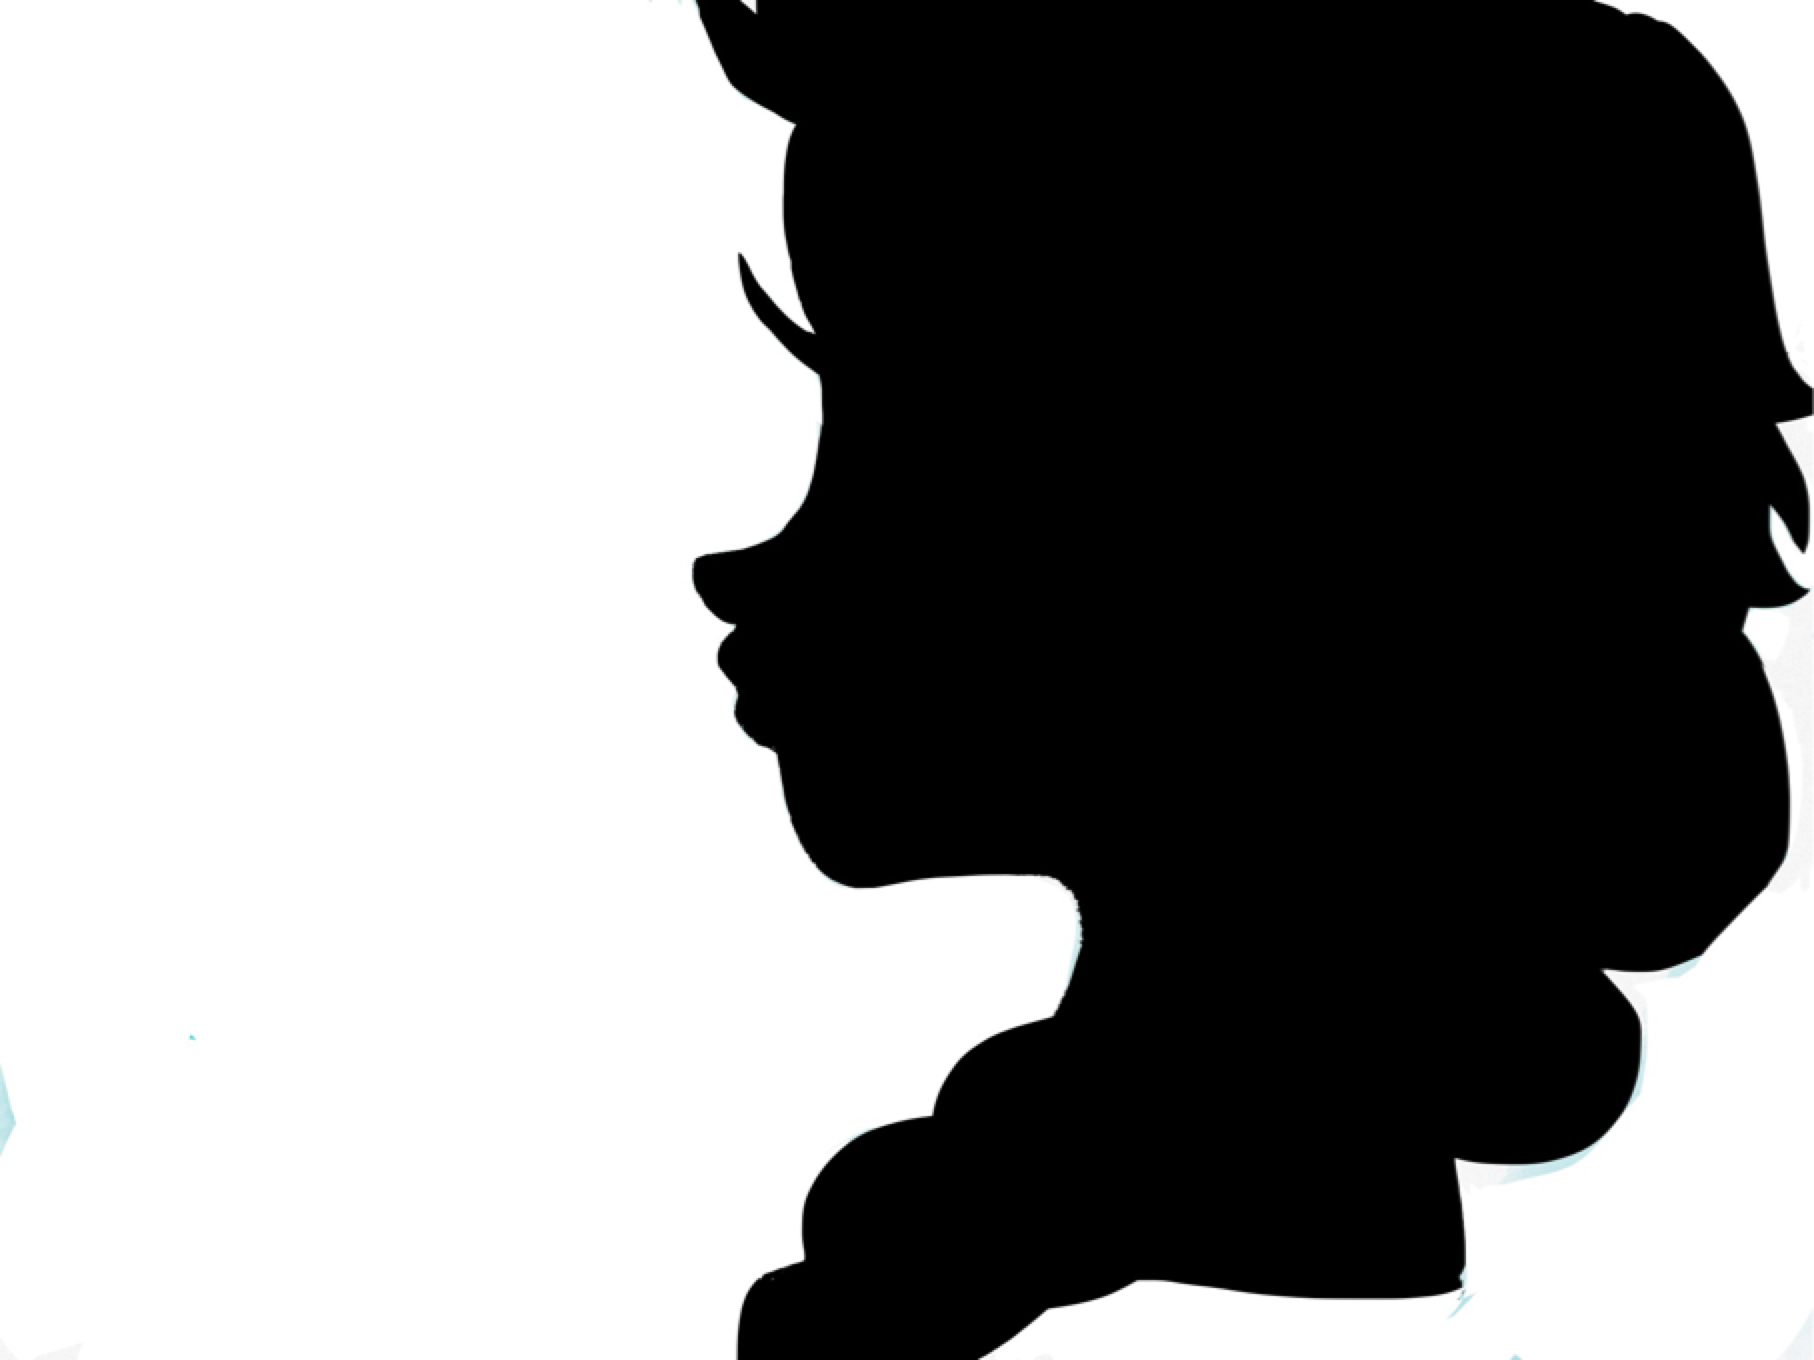 Tinkerbell Silhouette Stencil At Getdrawings Com Free For Personal